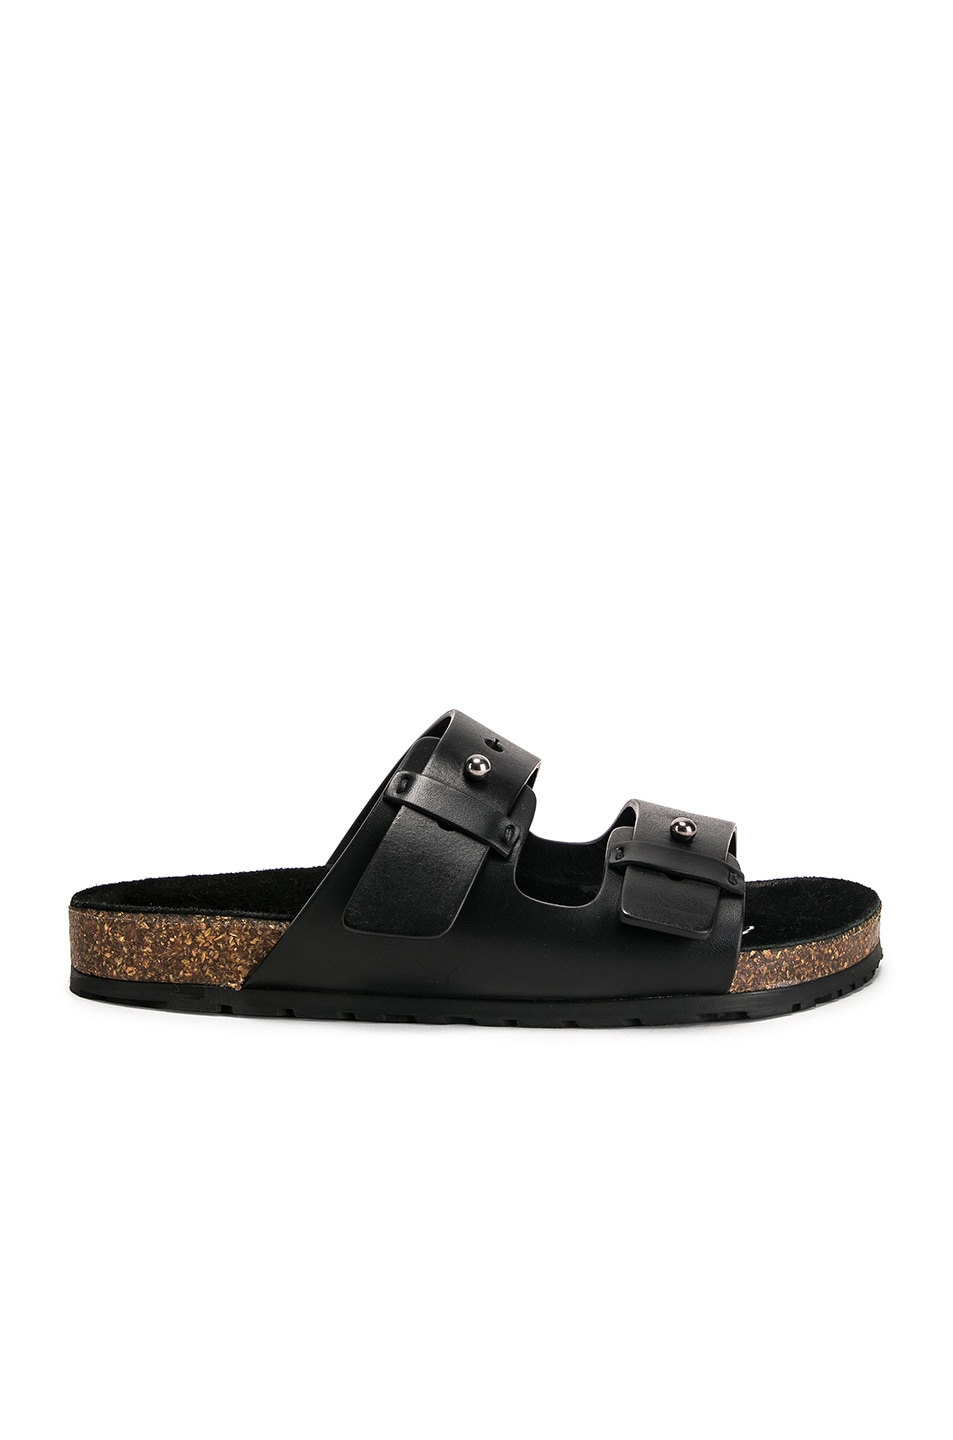 Image 1 of Saint Laurent Jimmy Sandals in Black